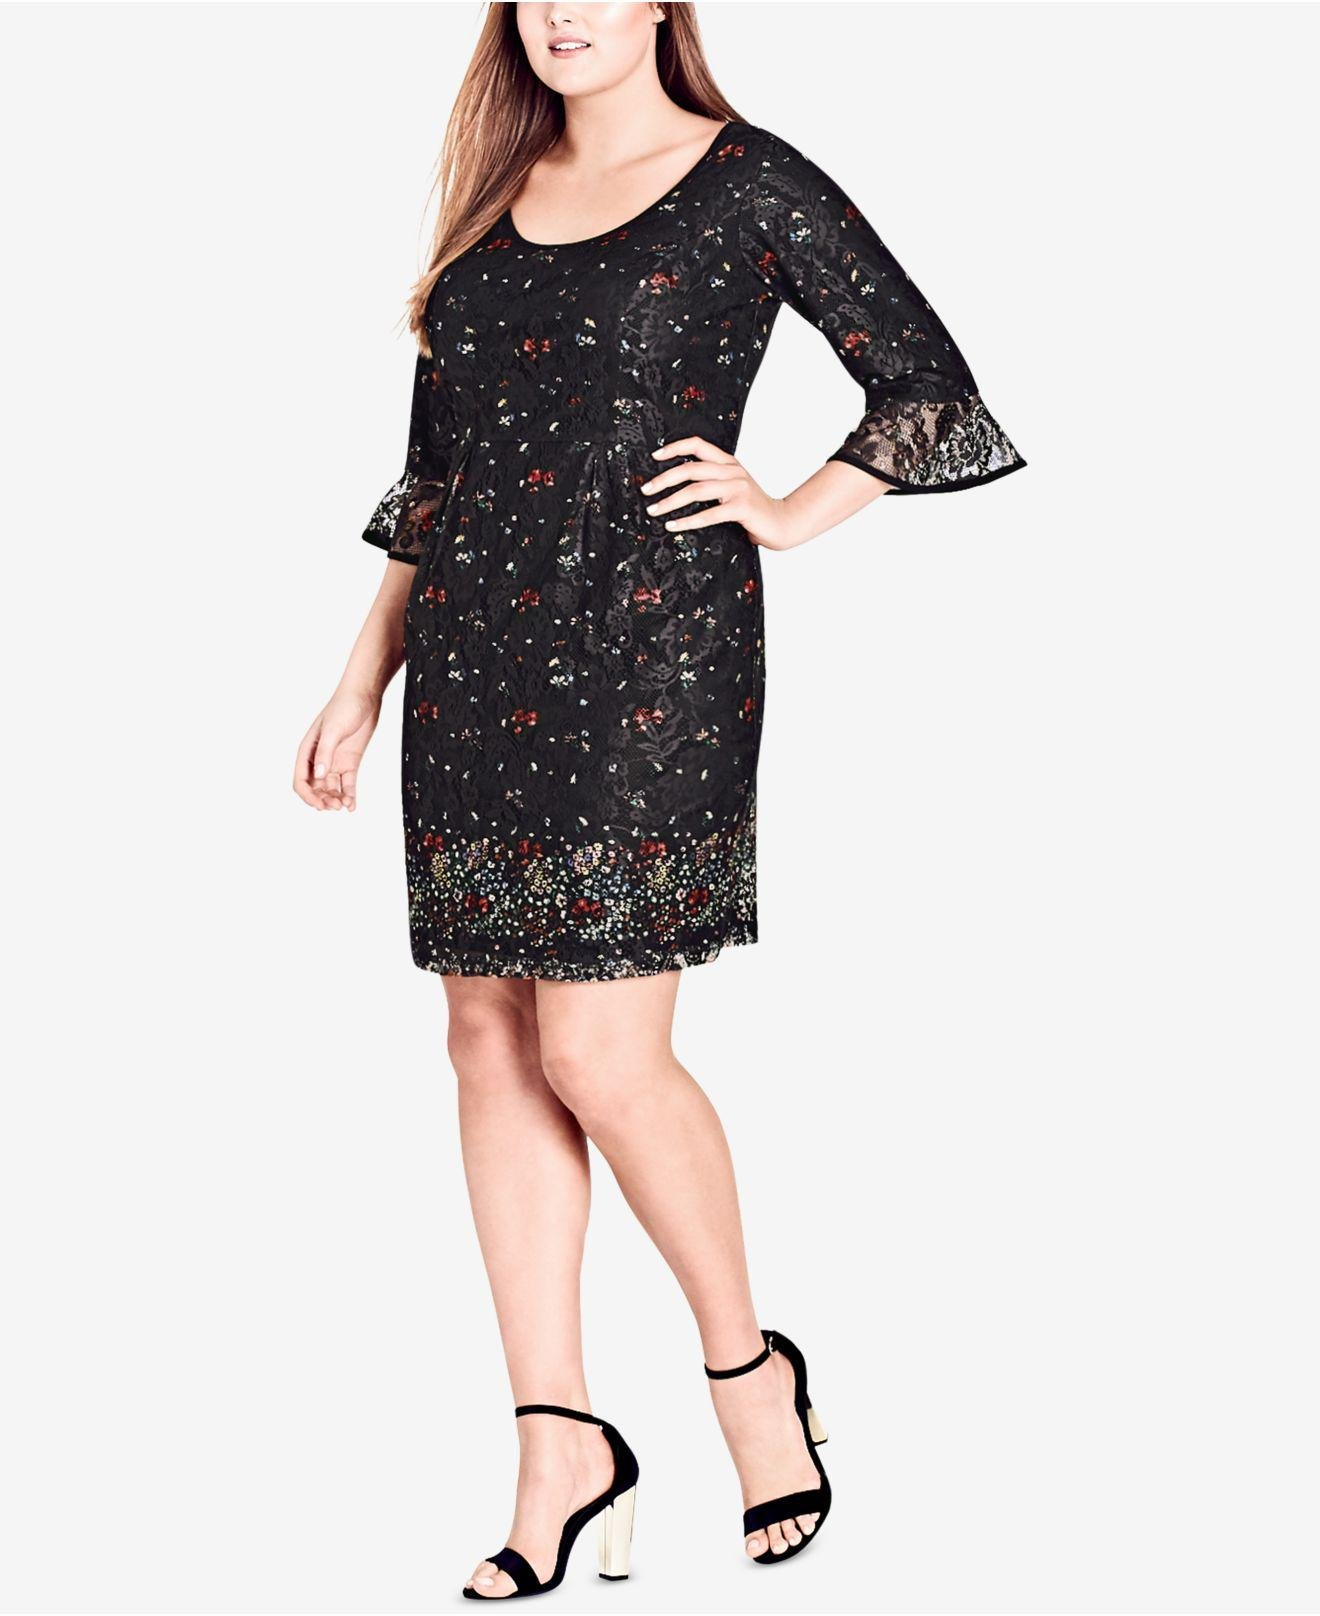 Buy the latest sexy plus size dresses for women at cheap prices, and check out our daily updated new arrival fashion plus size white dress, plus size club dresses at distrib-u5b2od.ga